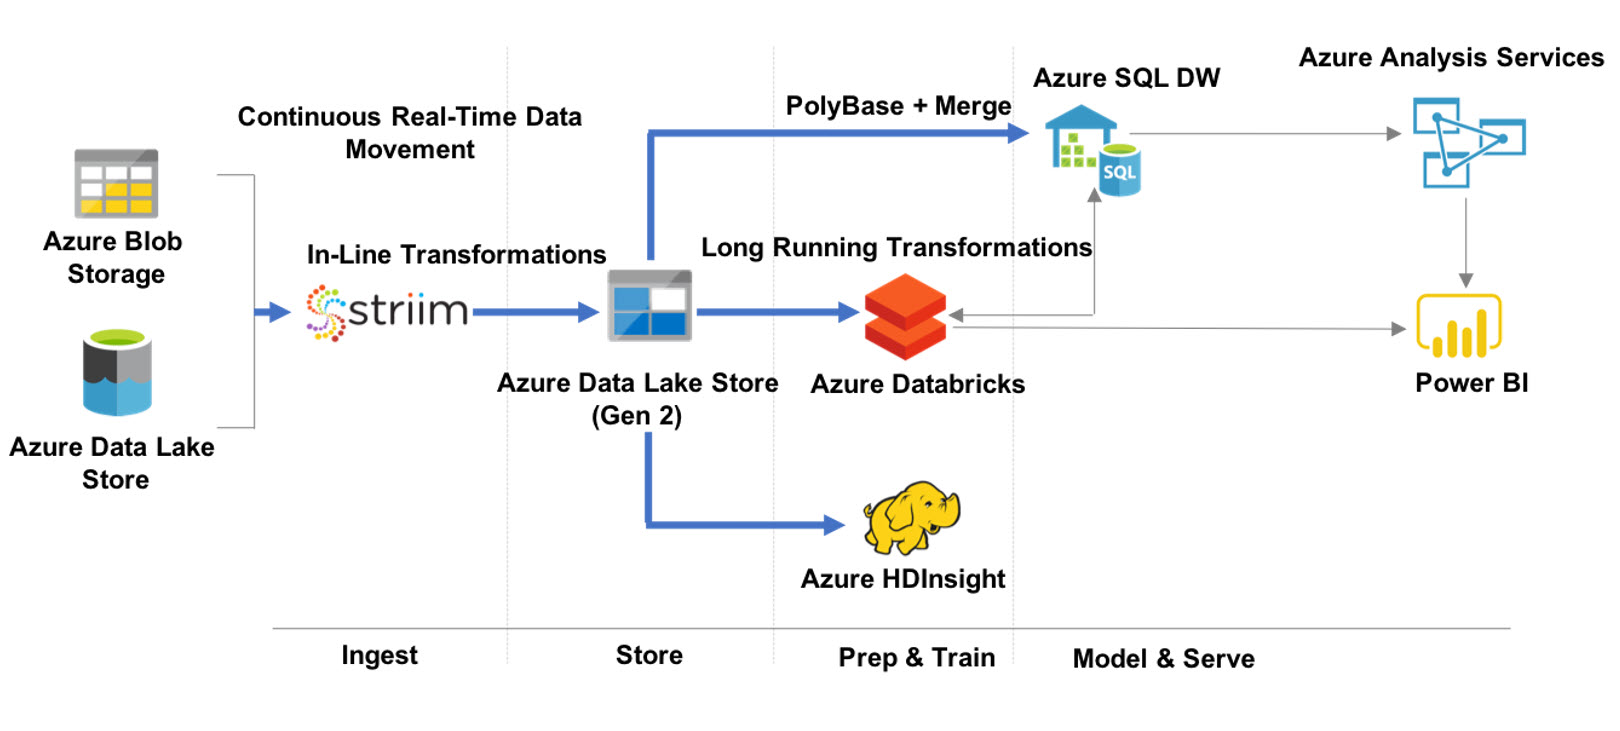 Continuous Real-Time Data Integration to Azure Data Lake